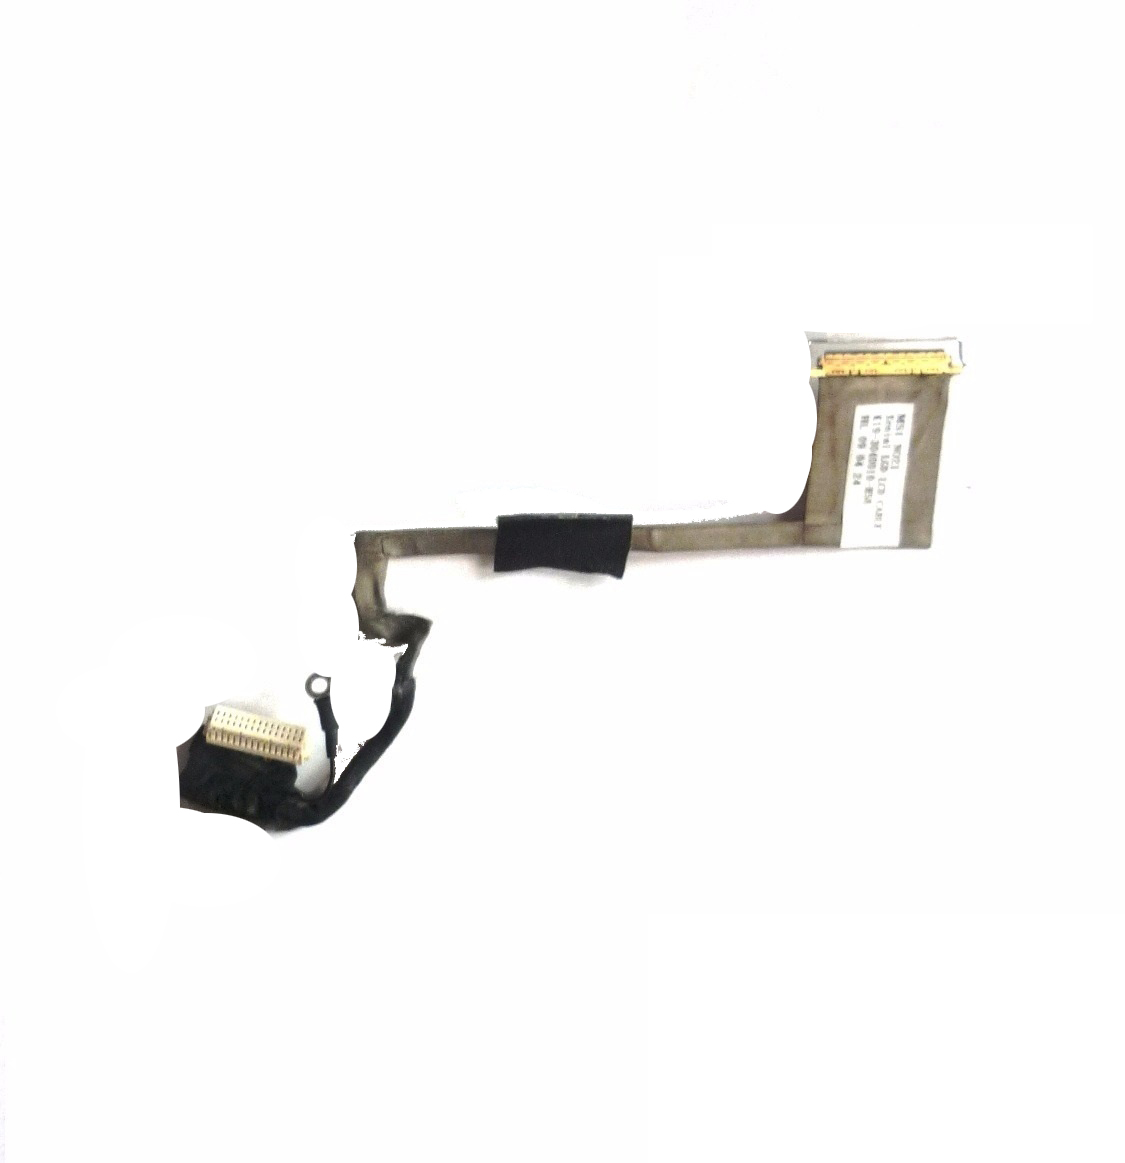 Kαλωδιοταινία Οθόνης-Flex Screen cable MSI N021 NO21 LG X110 K19-3040010-H58 X11 X110 Video Screen Cable (Κωδ. 1-FLEX0511)